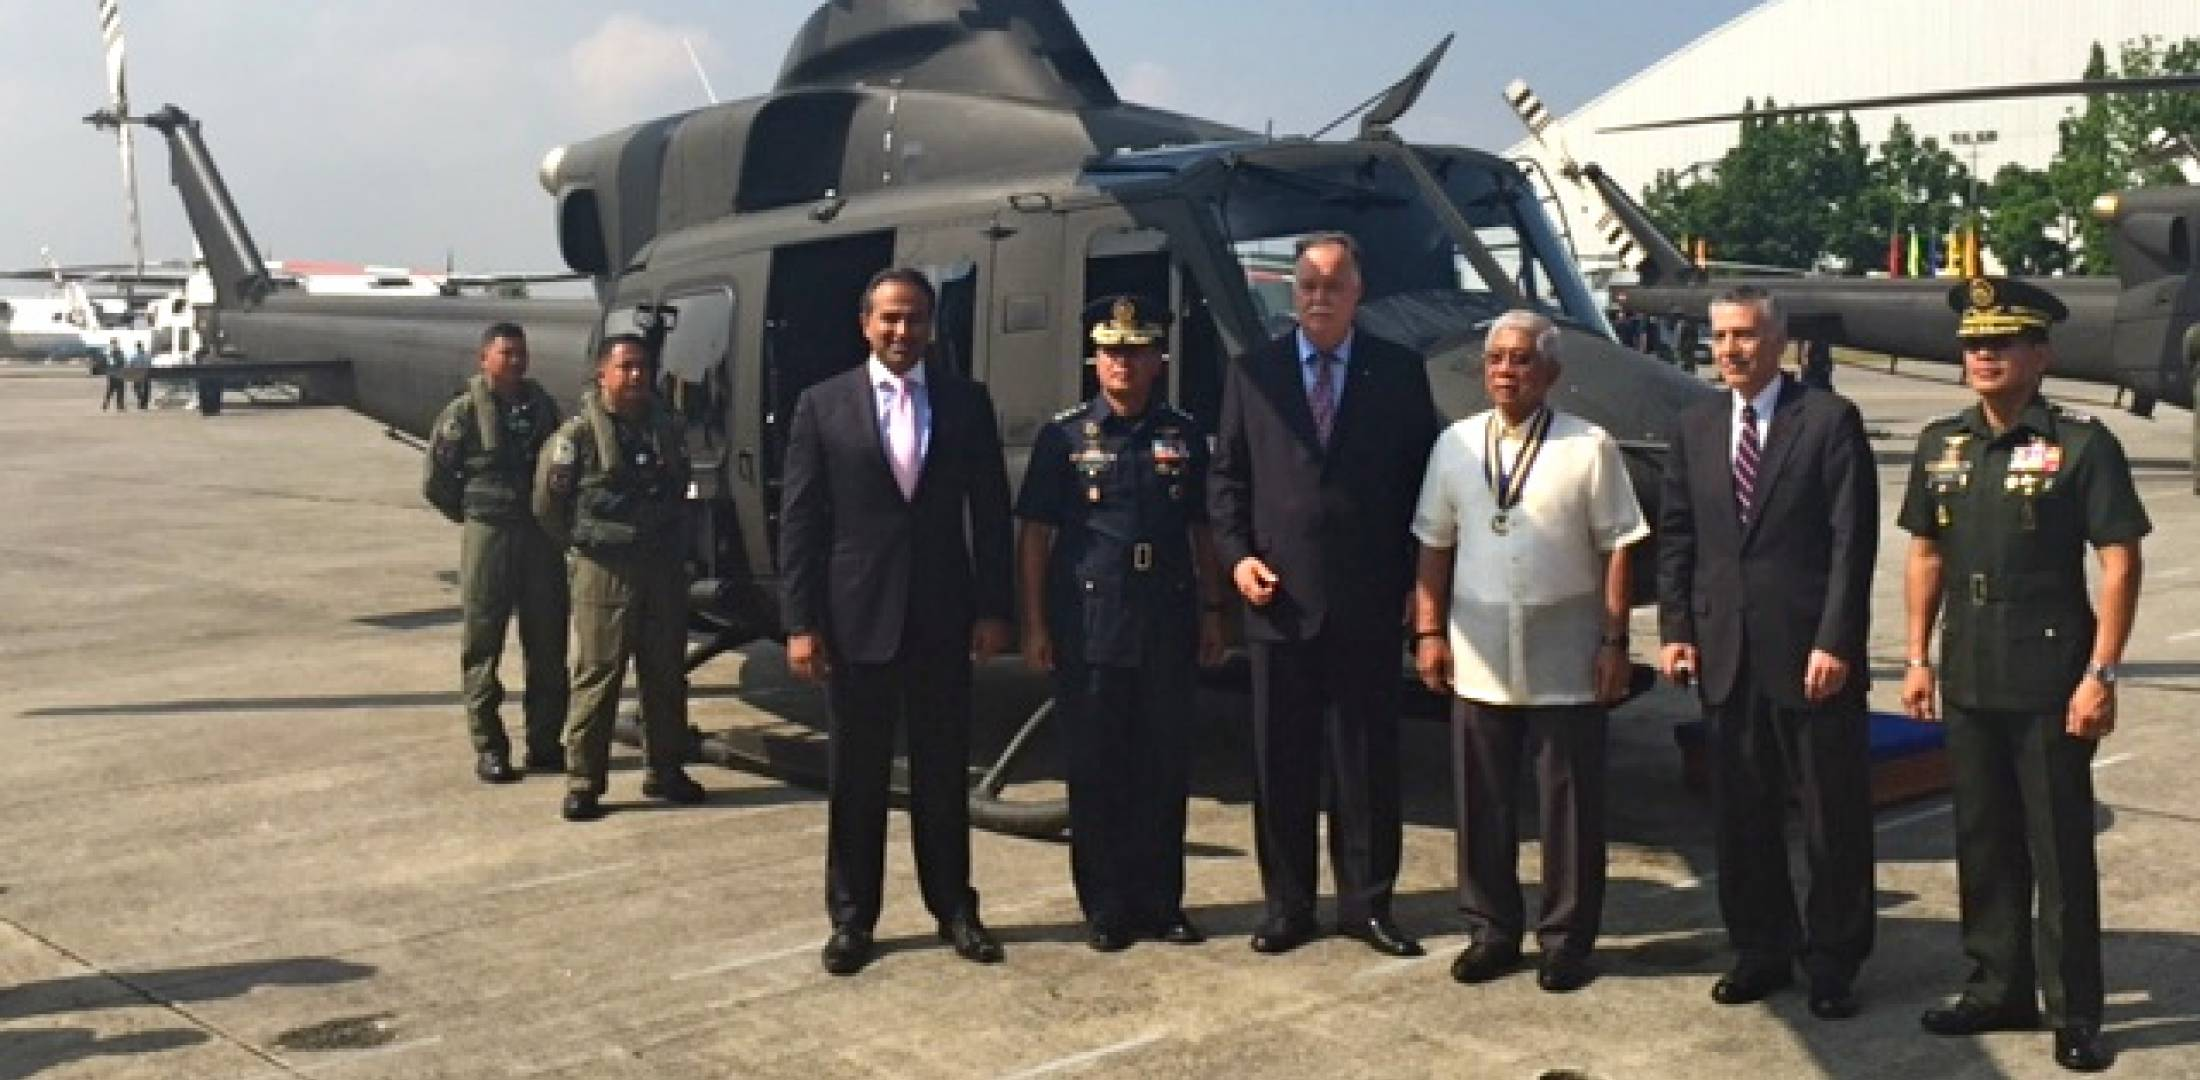 Final Bell 412EP delivered to Philippines